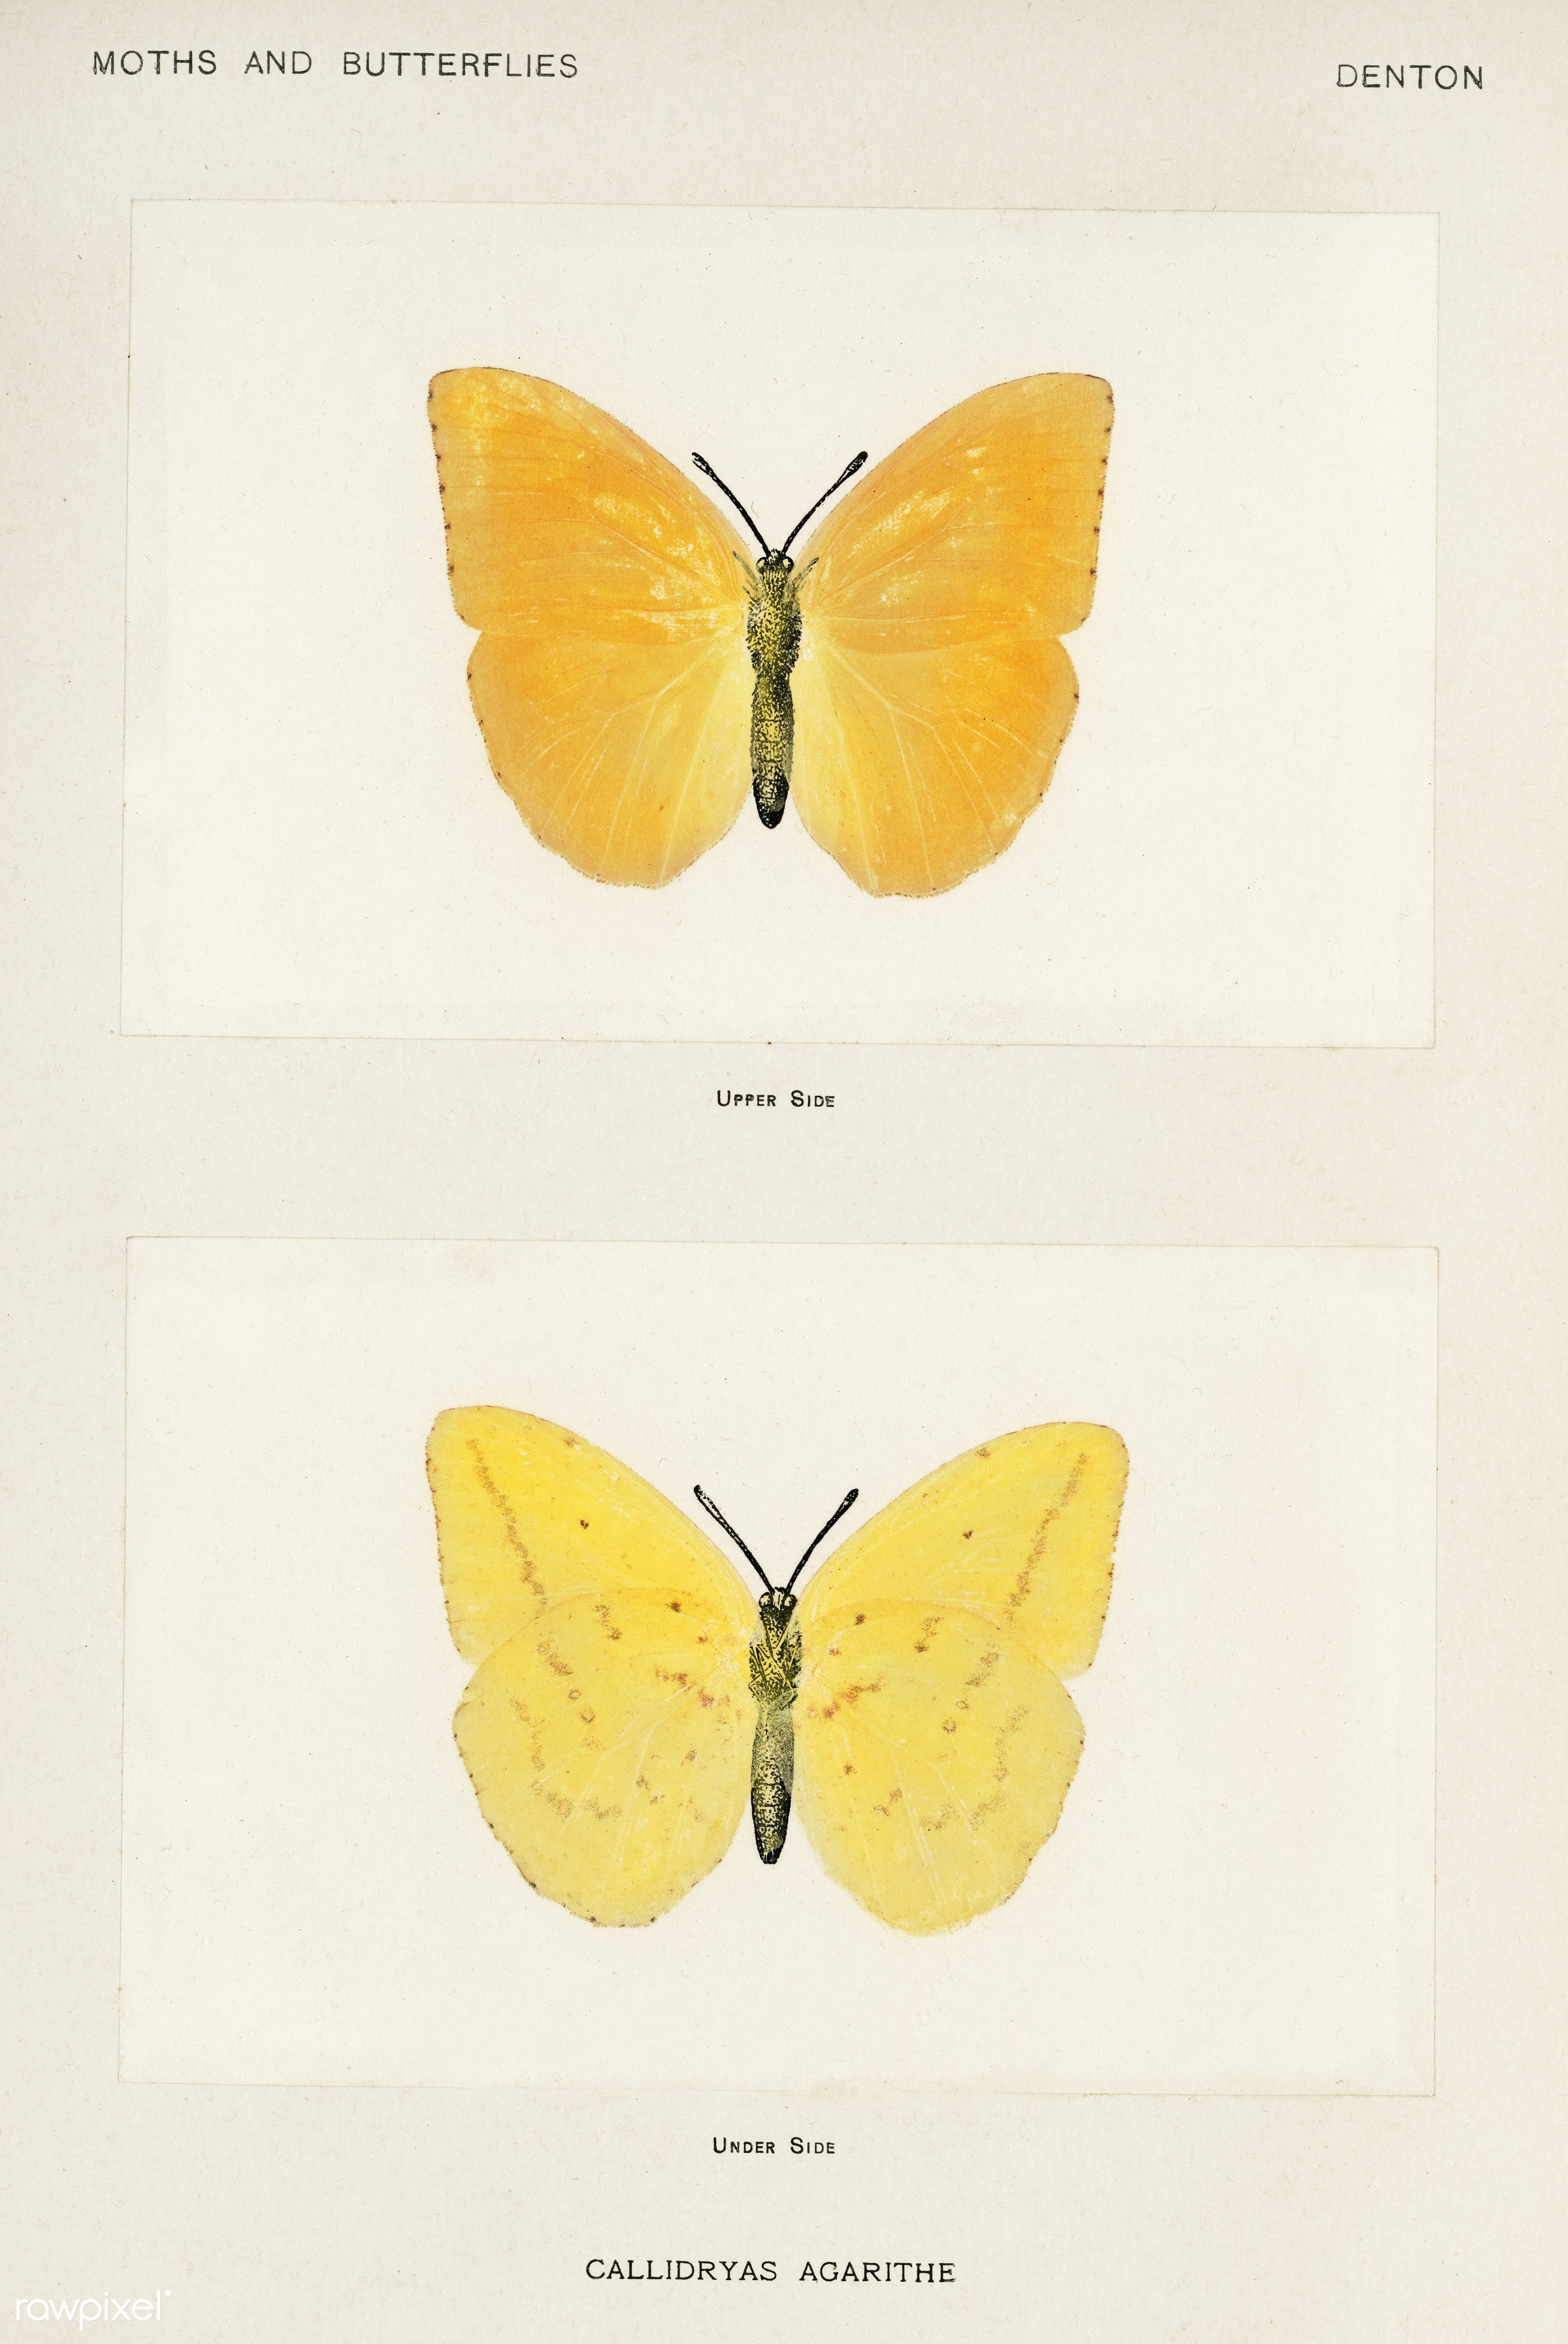 Orange Giant Sulphur (Callidryas Agarithe) from Moths and butterflies of the United States (1900) by Sherman F. Denton (1856...